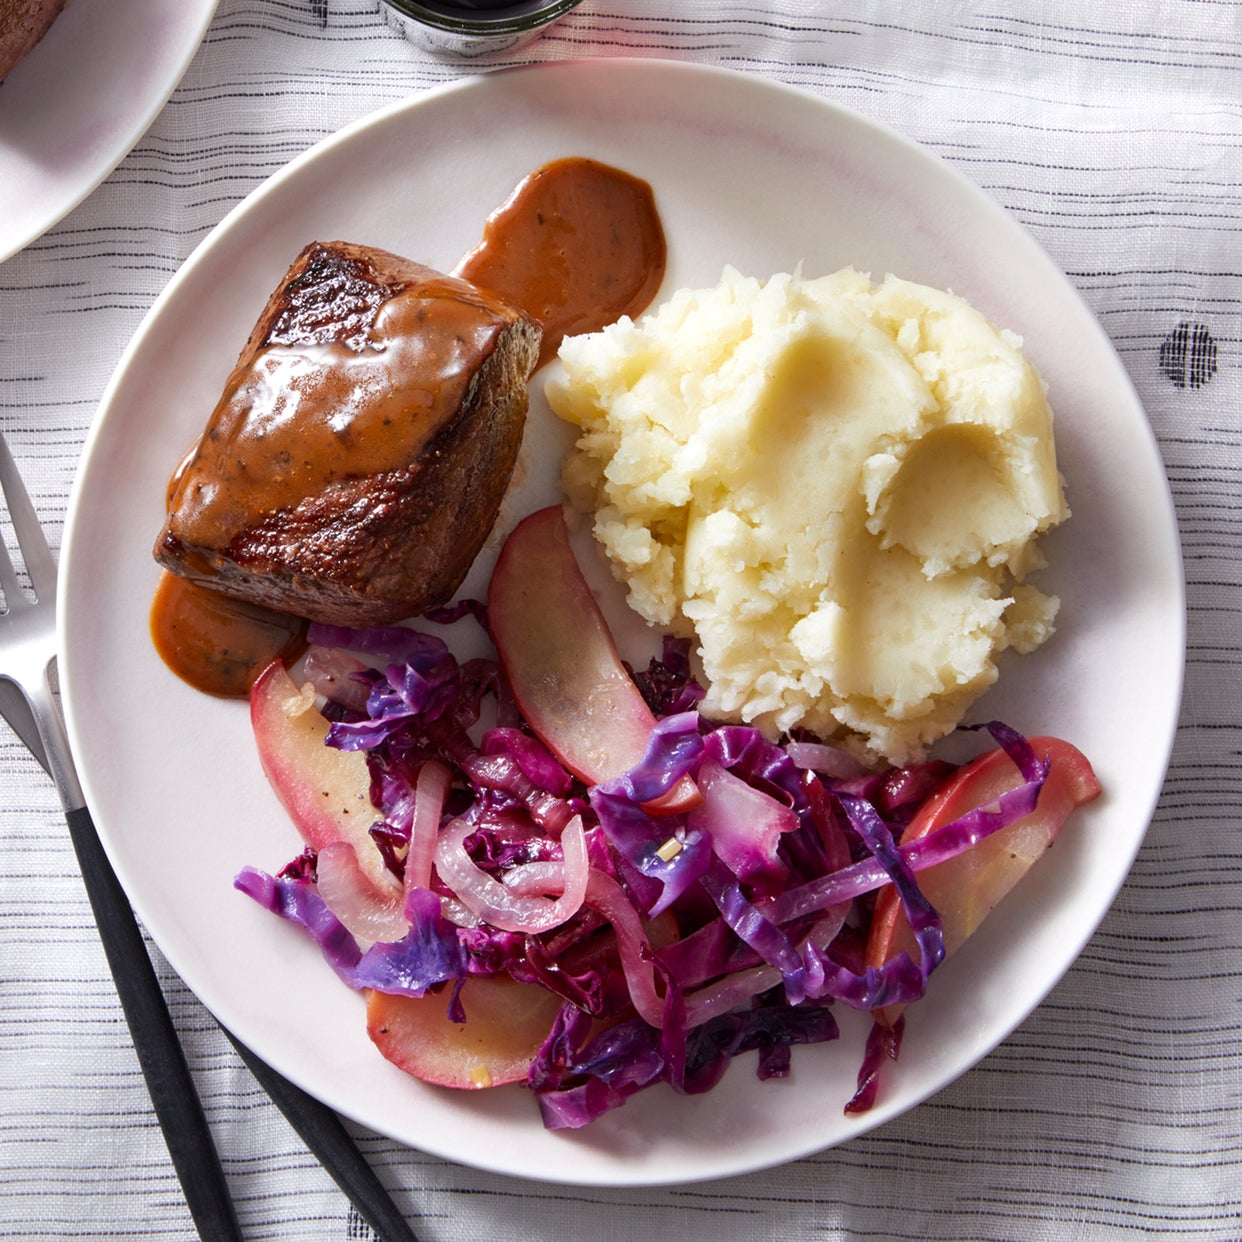 Seared Steaks & Mashed Potatoes with Braised Cabbage & Apple